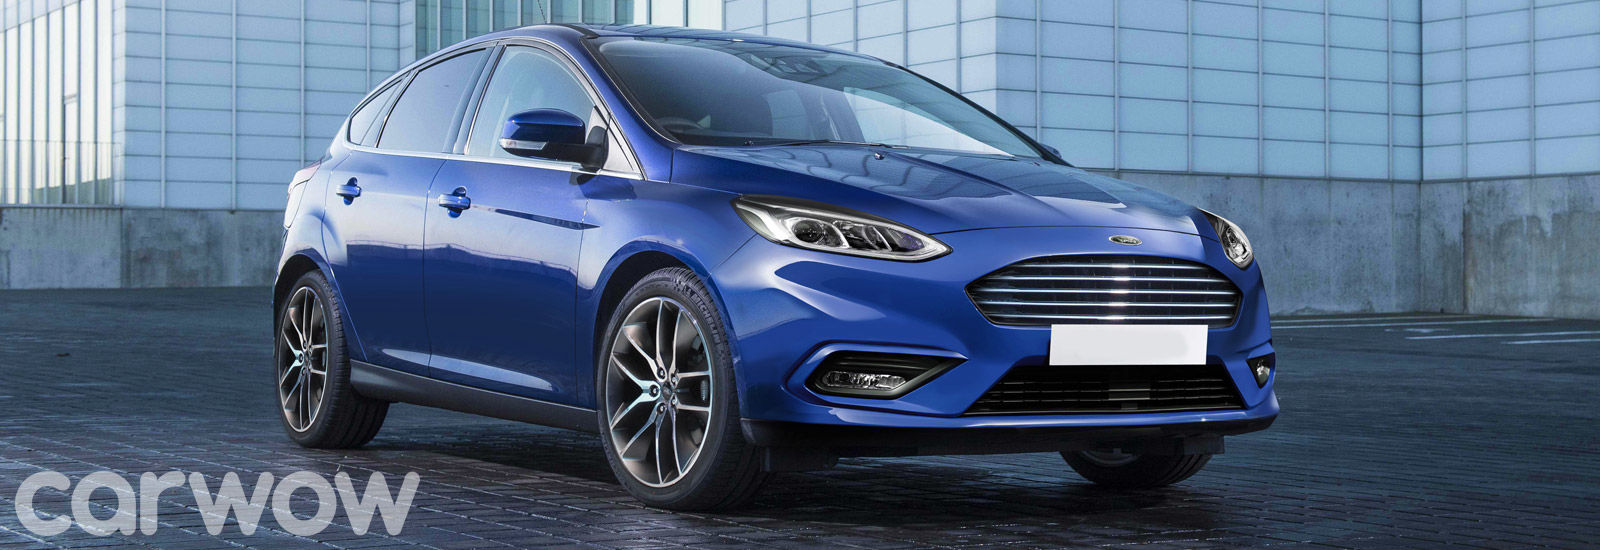 2018 Ford Focus price, specs and release date | carwow